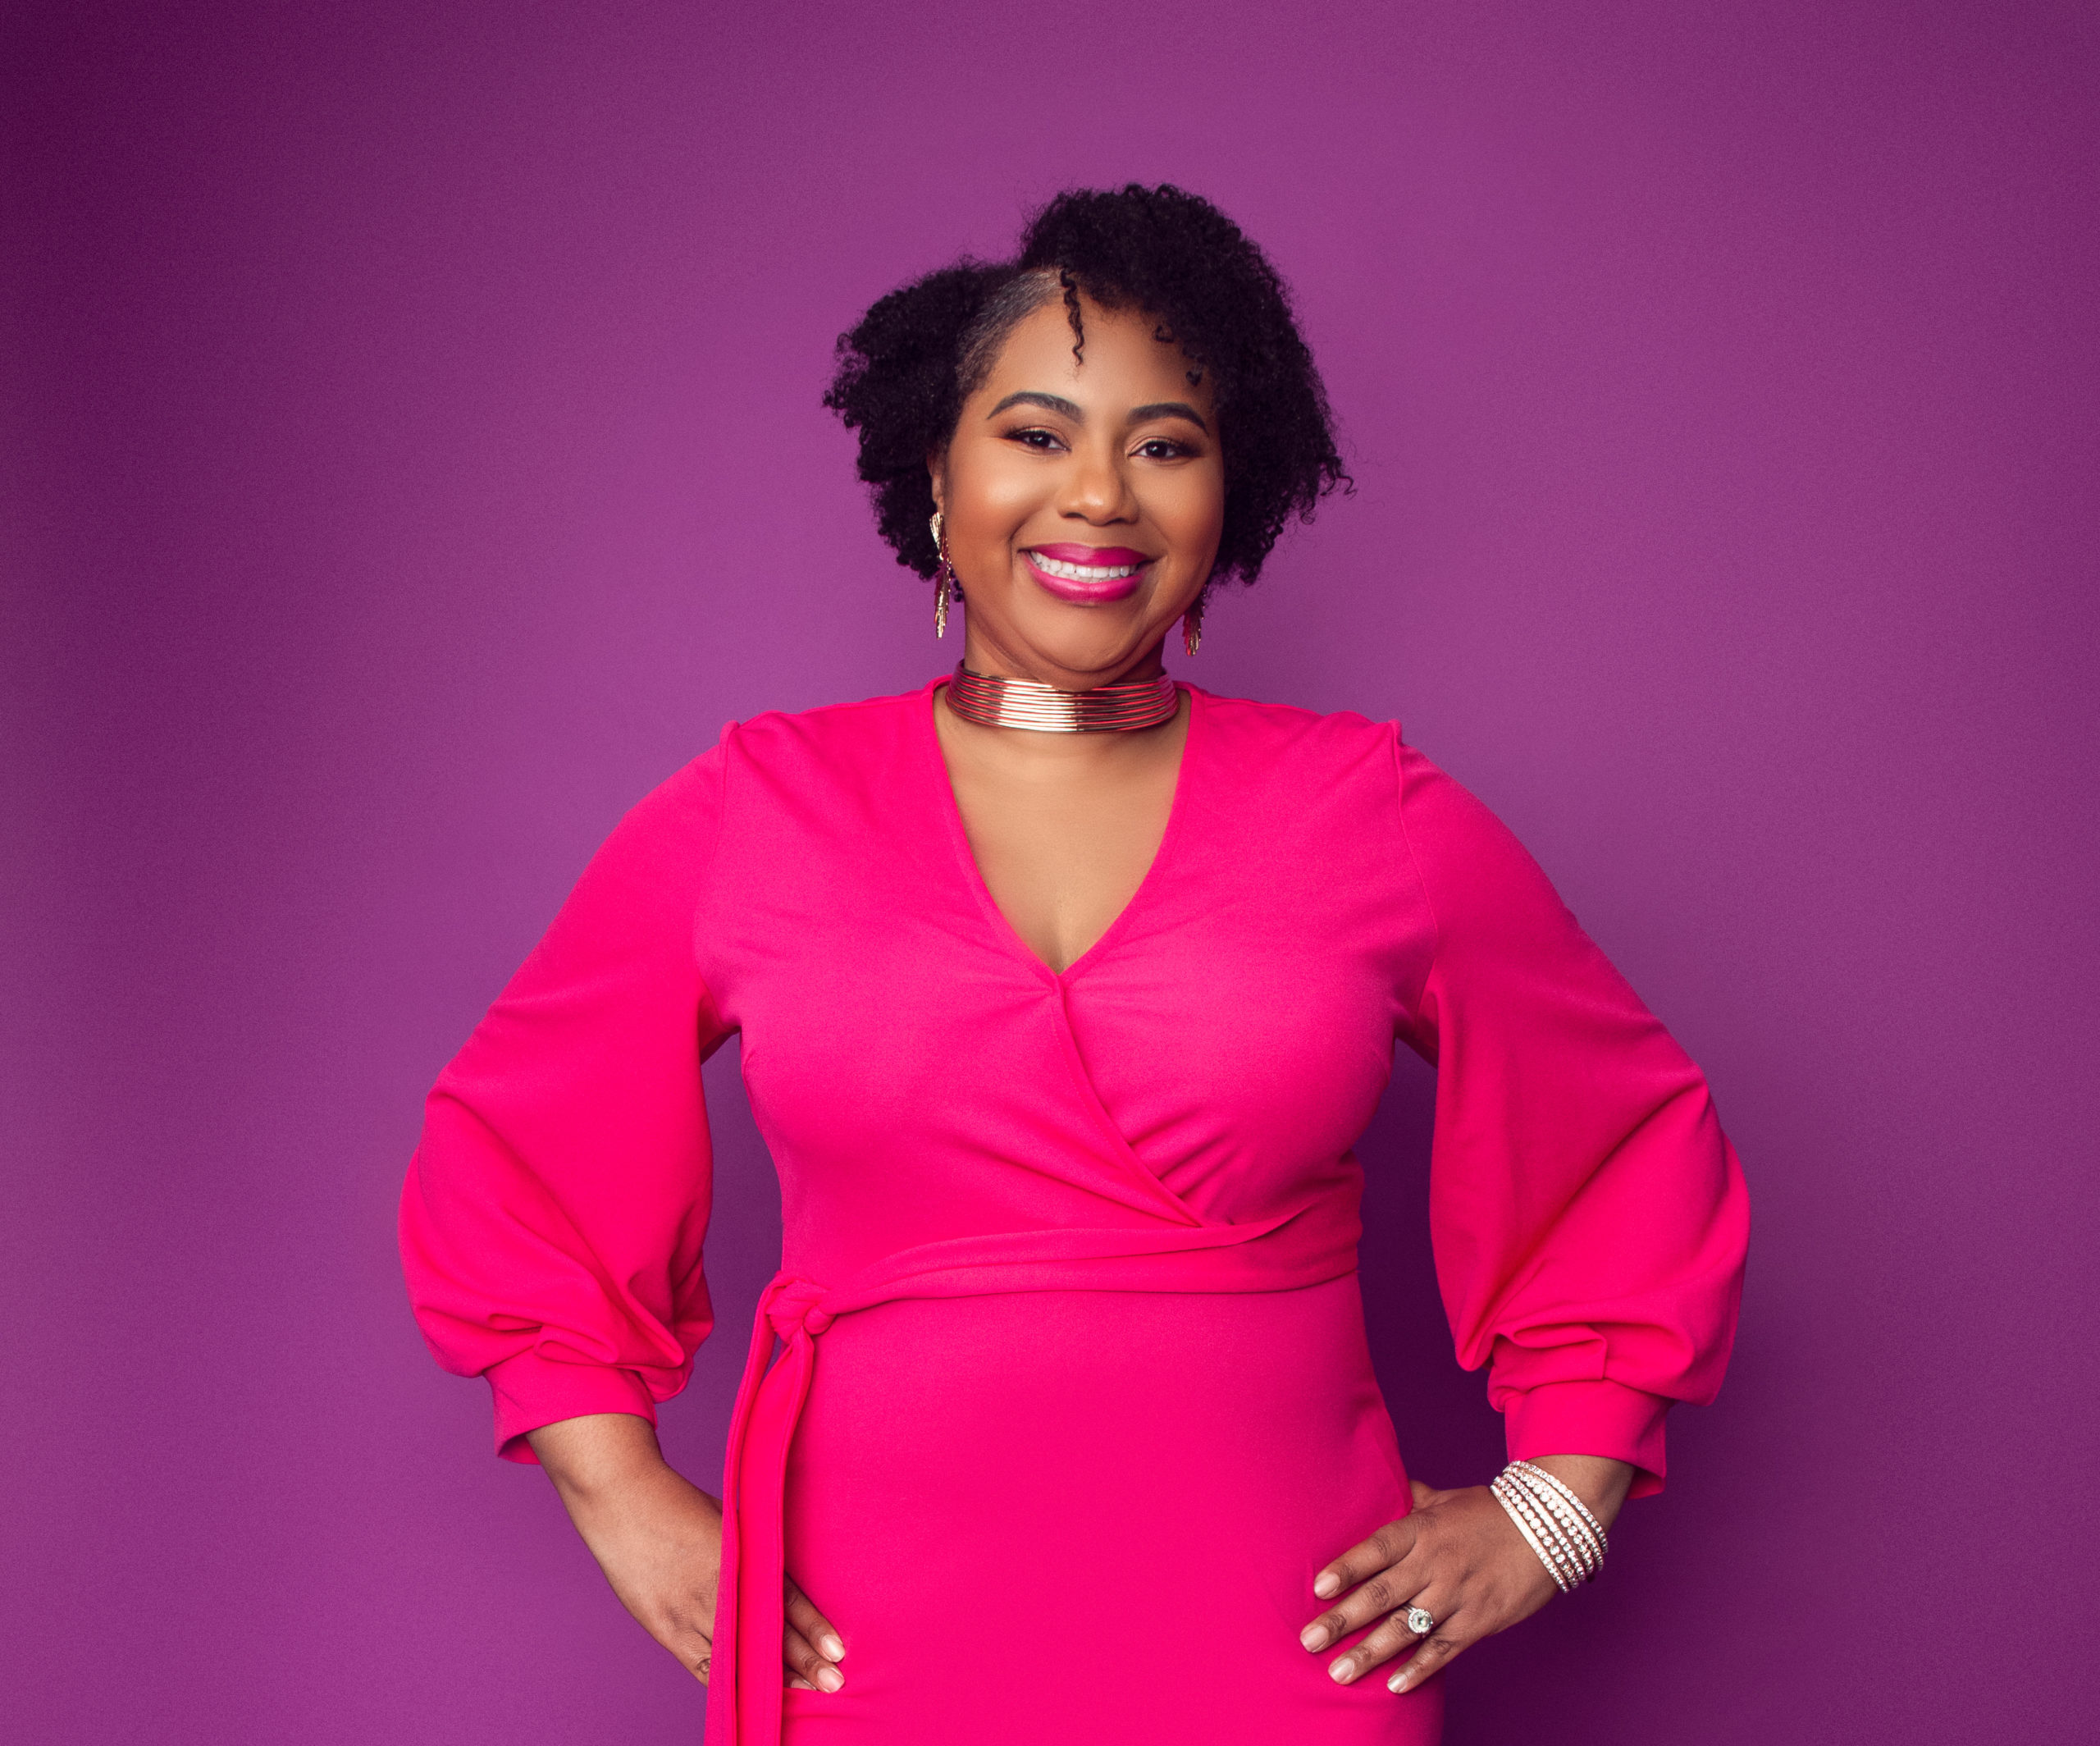 Woman with black hair is smiling and wearing a pink dress. Her hands are on her hips.